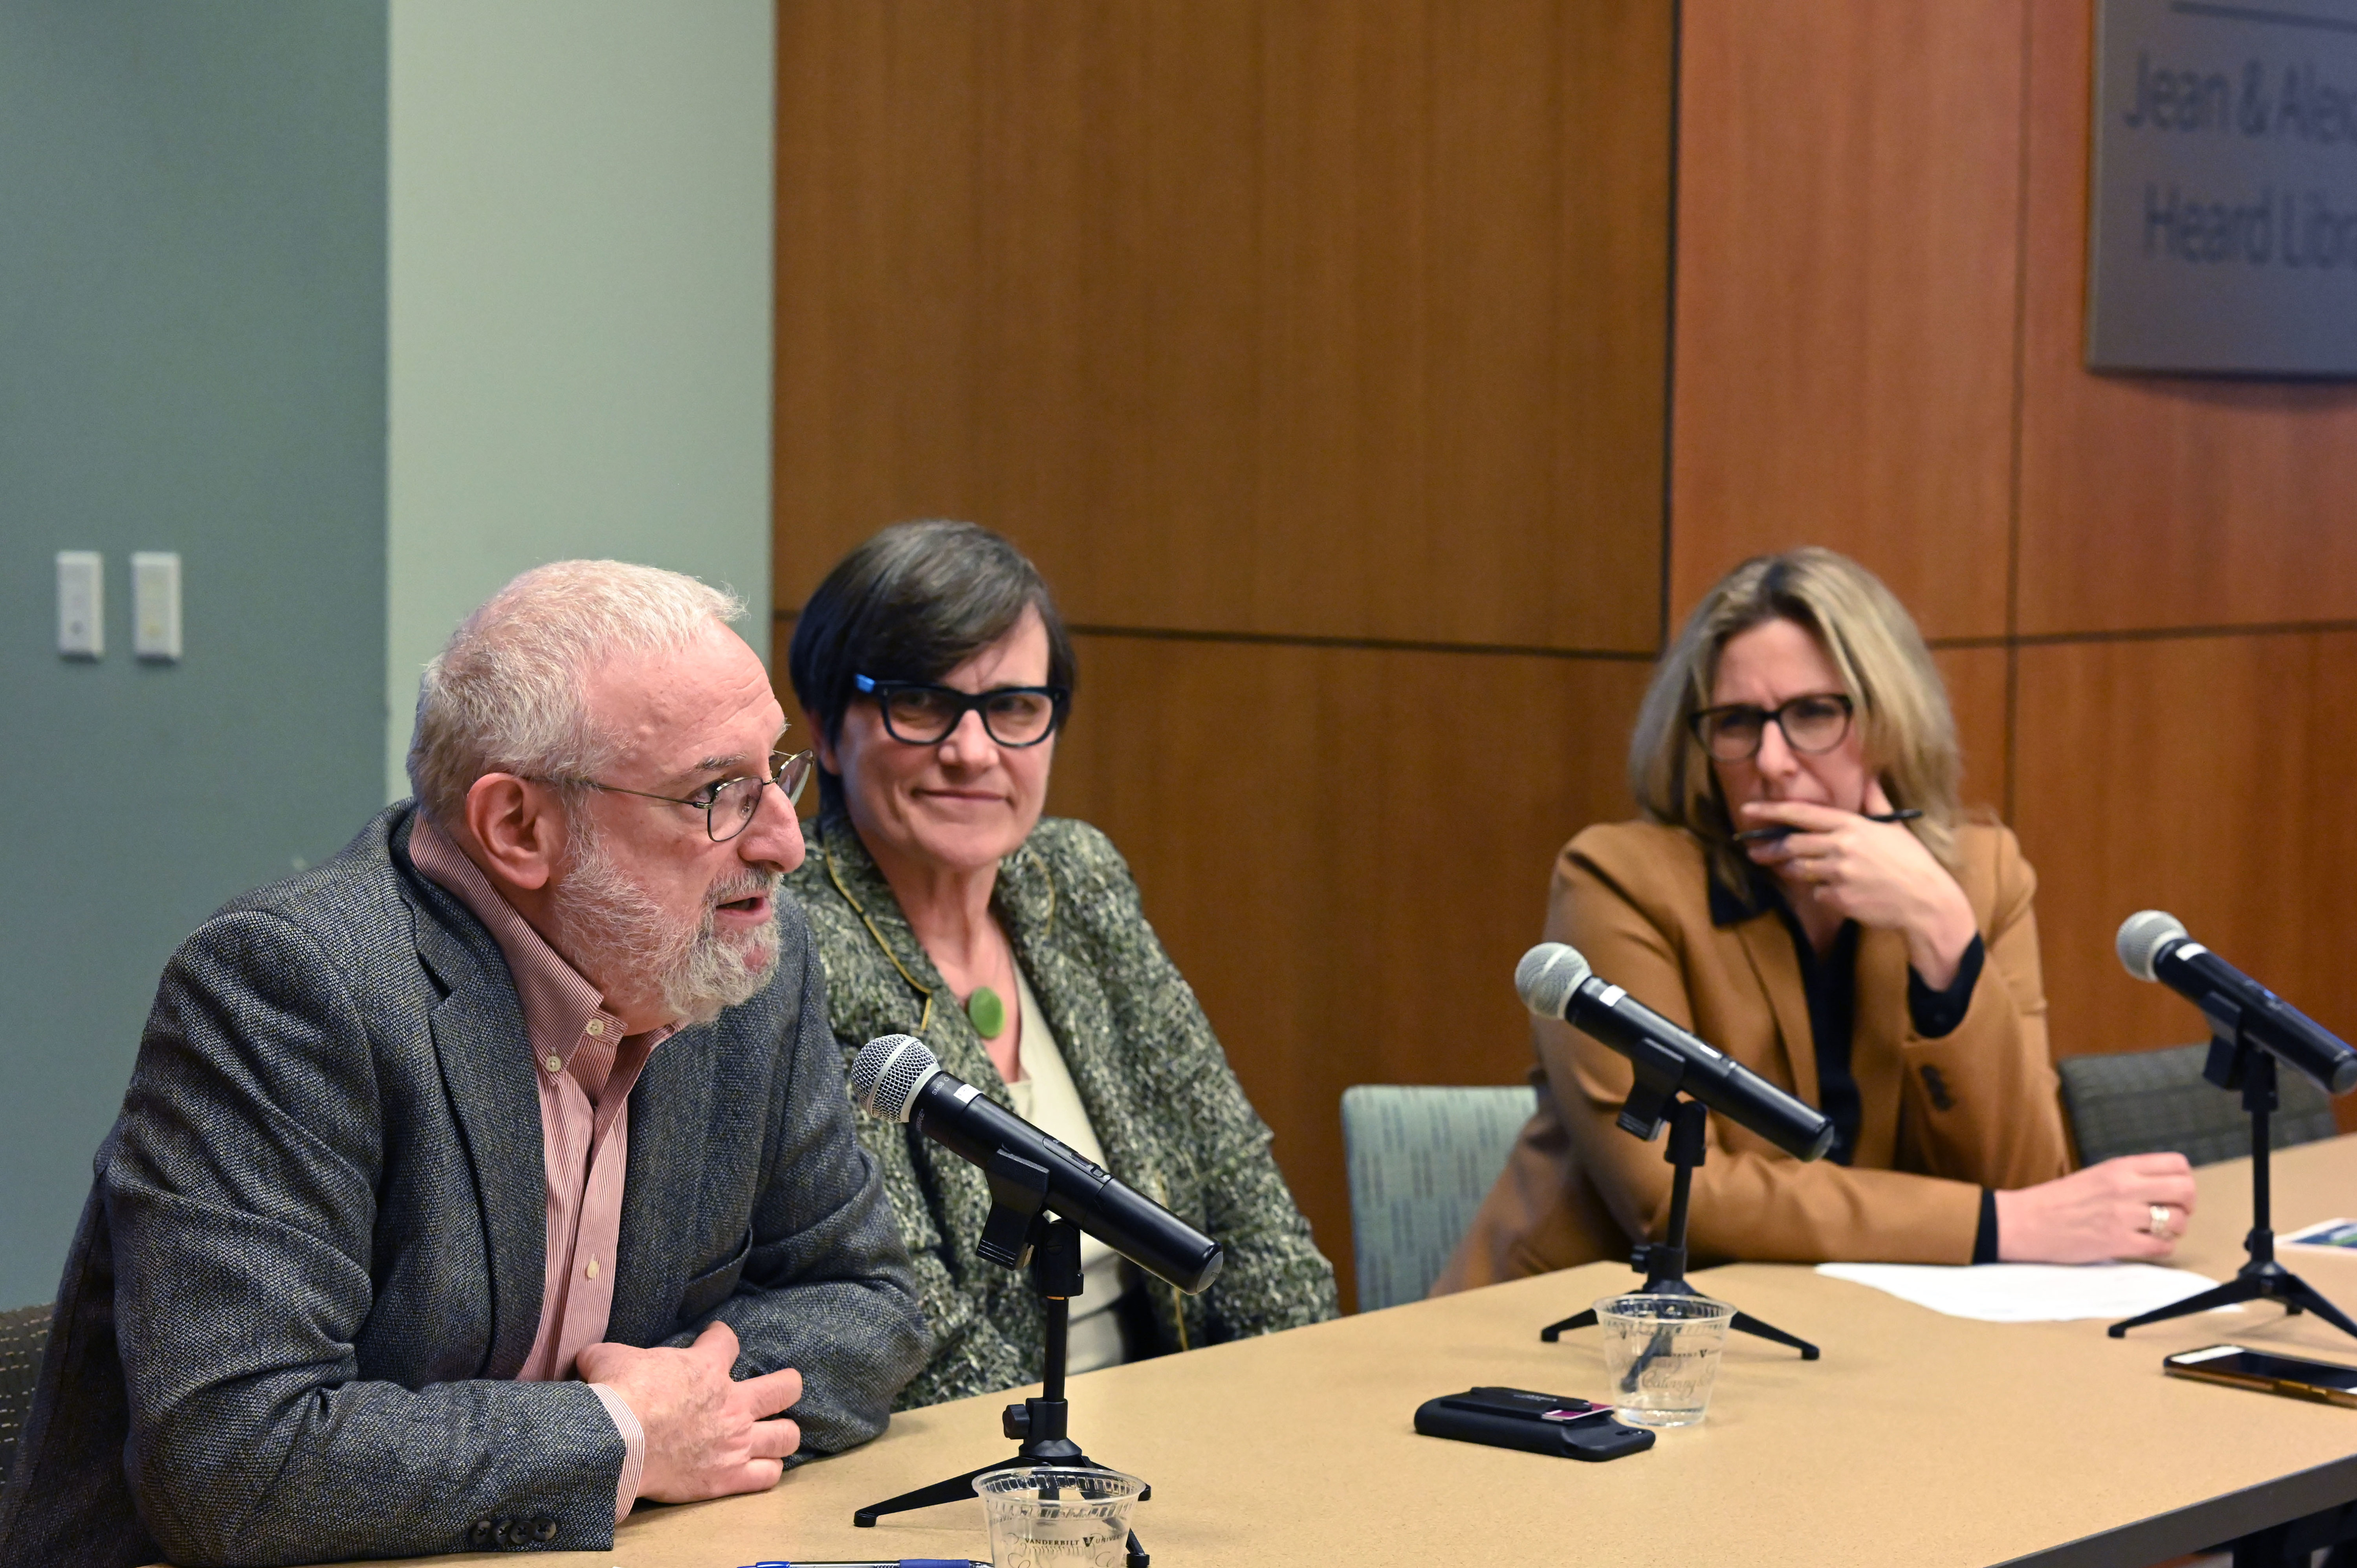 James Grossman, Paula Krebs, and Holly Tucker speak at a panel discussion